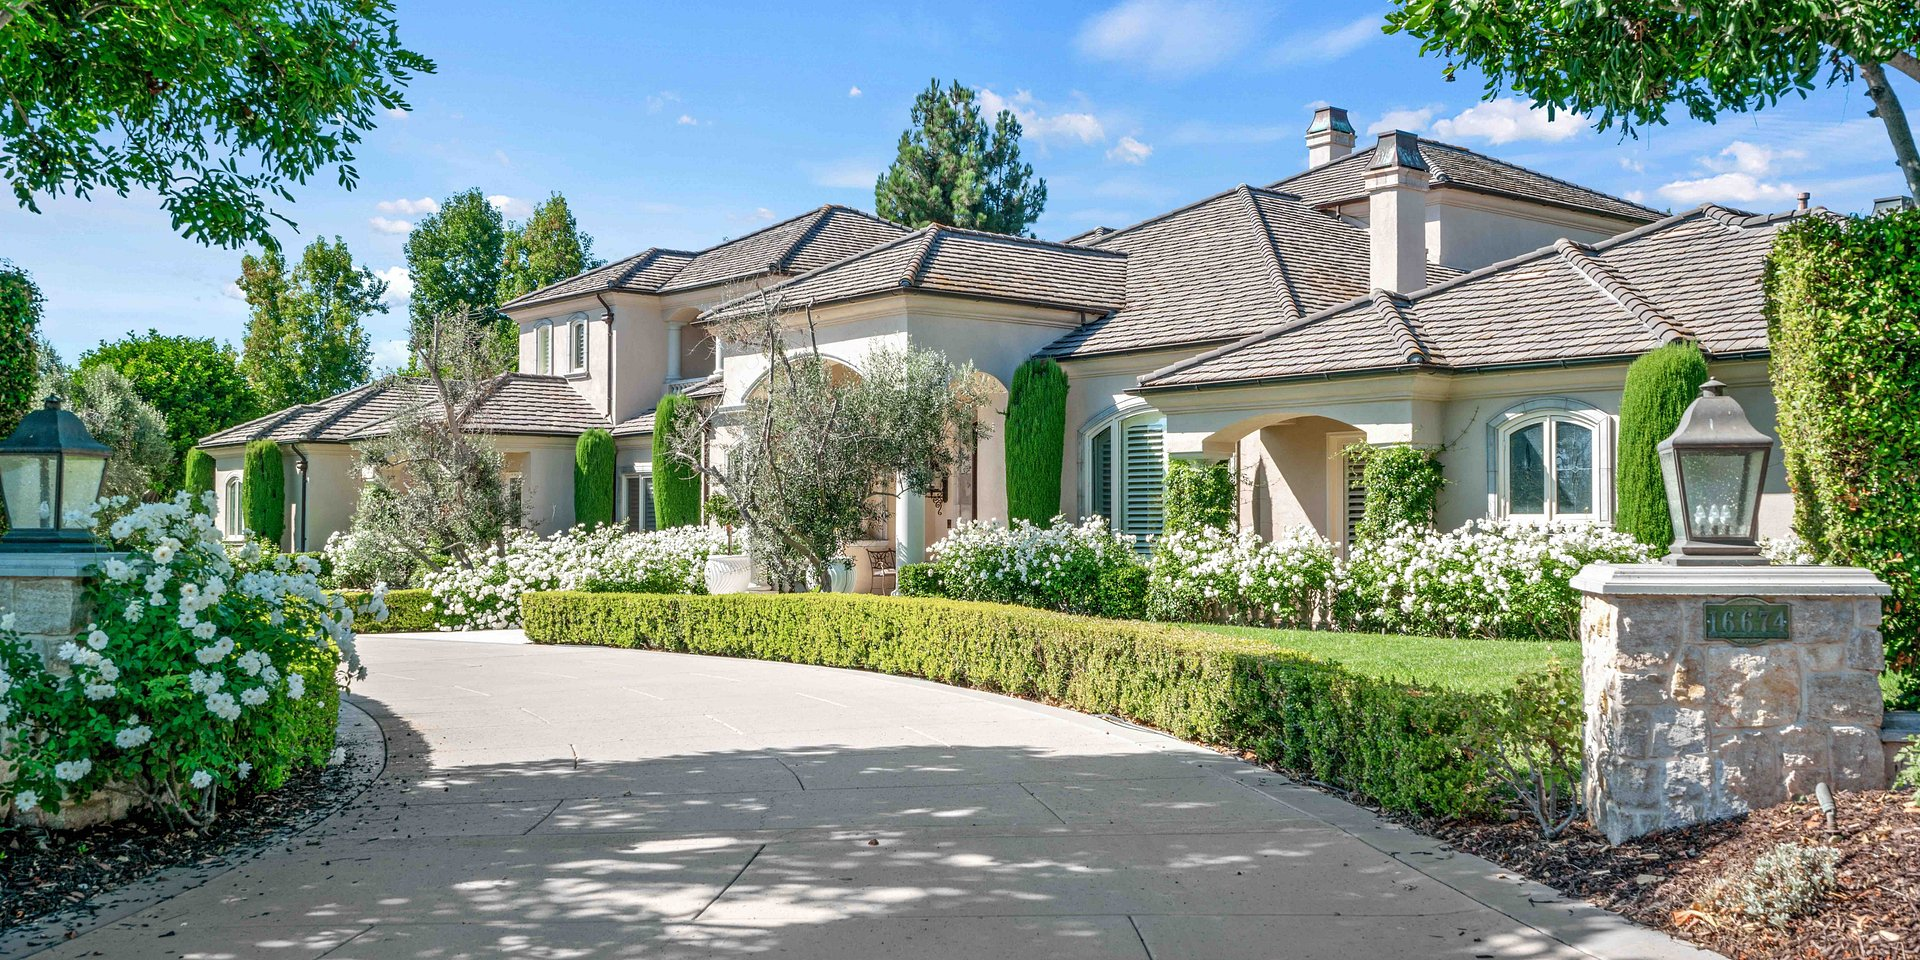 Coldwell Banker Residential Brokerage Lists Rancho Santa Fe Property for $4.695 MillionUntitled